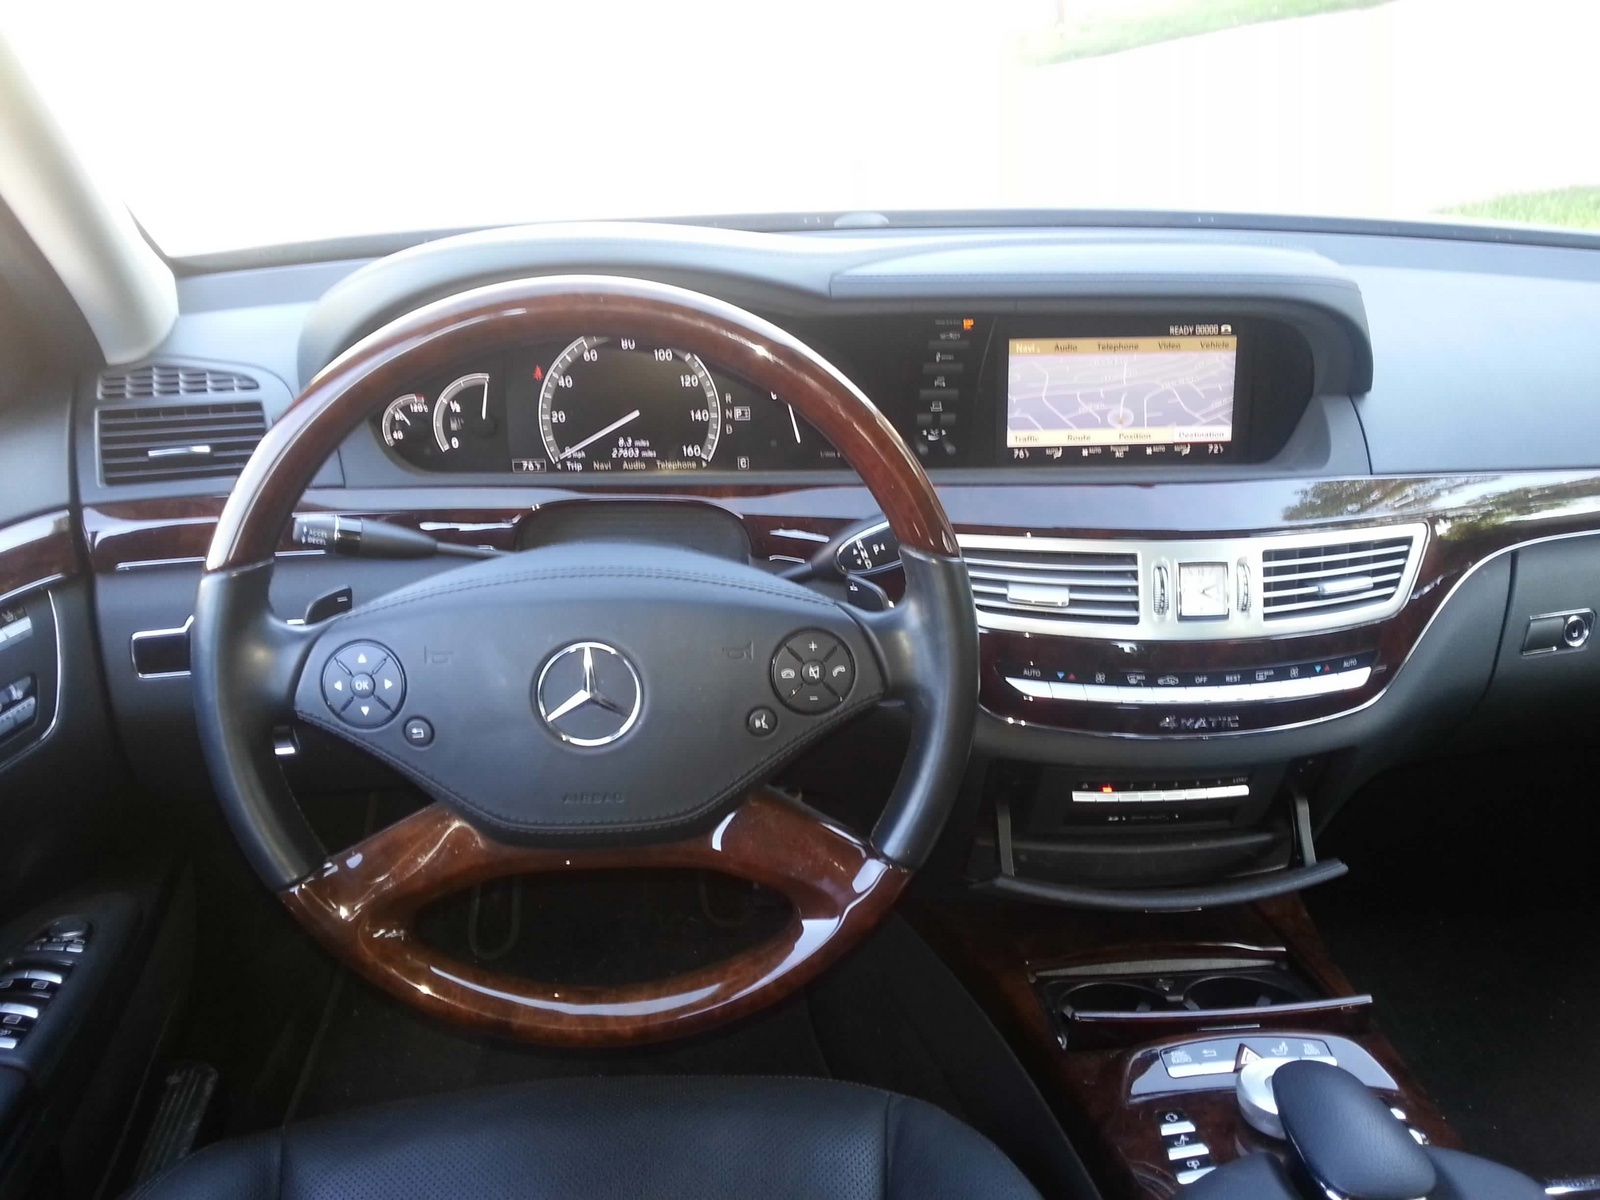 2010 mercedes benz s class interior pictures cargurus for Mercedes benz s550 4matic 2010